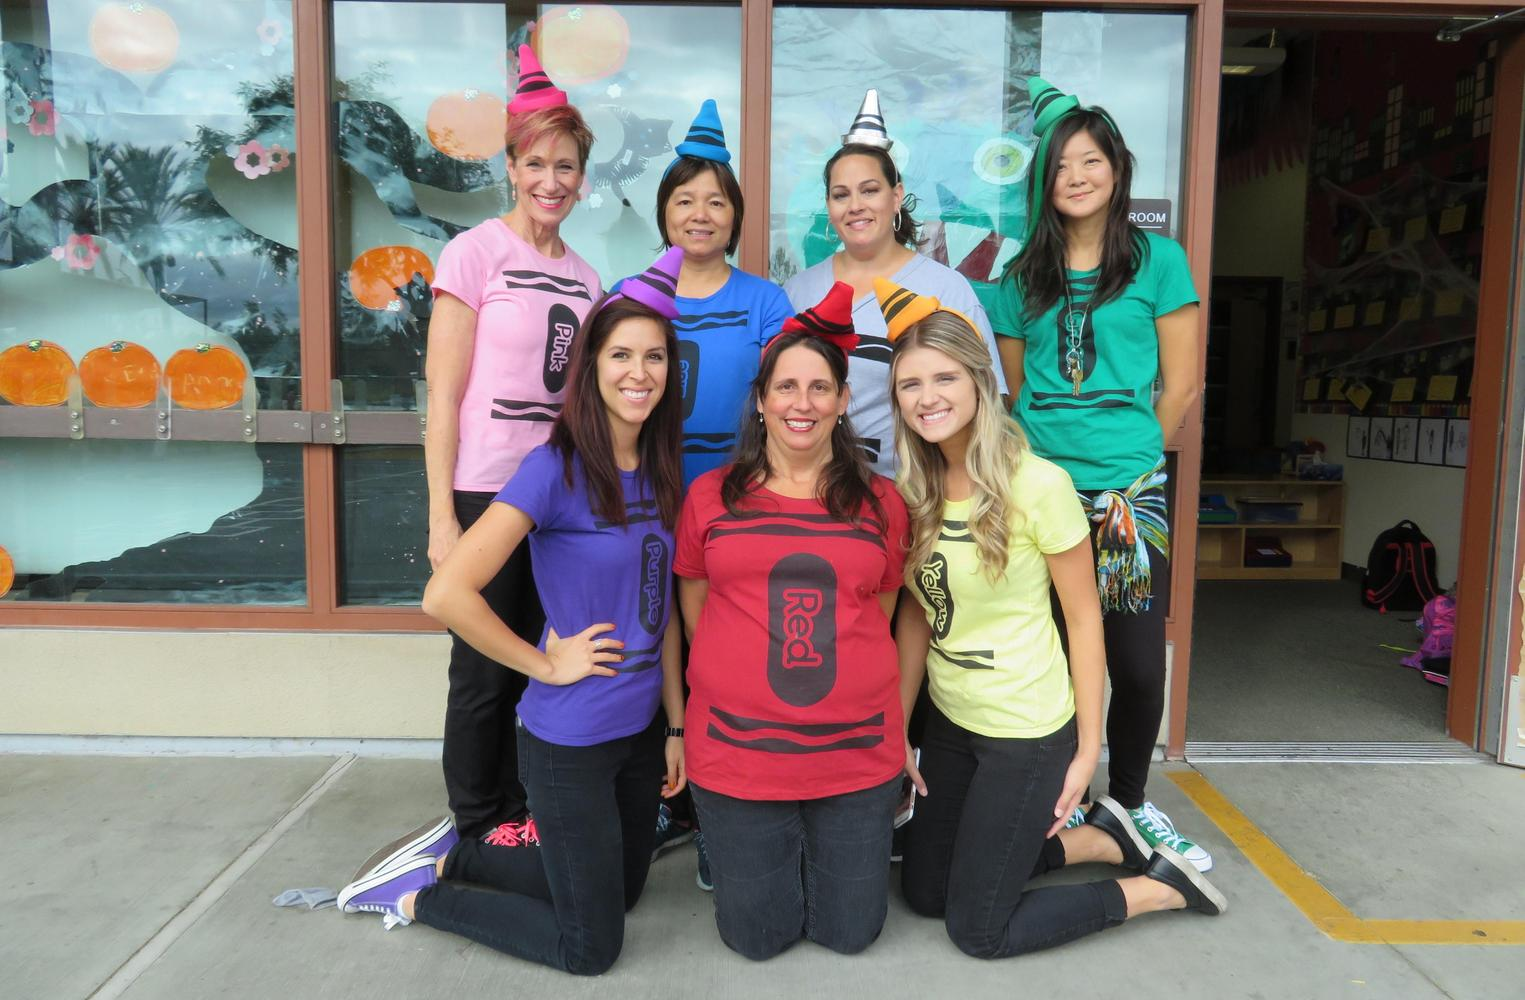 Kindergarten Staff dressed as crayons for Halloween